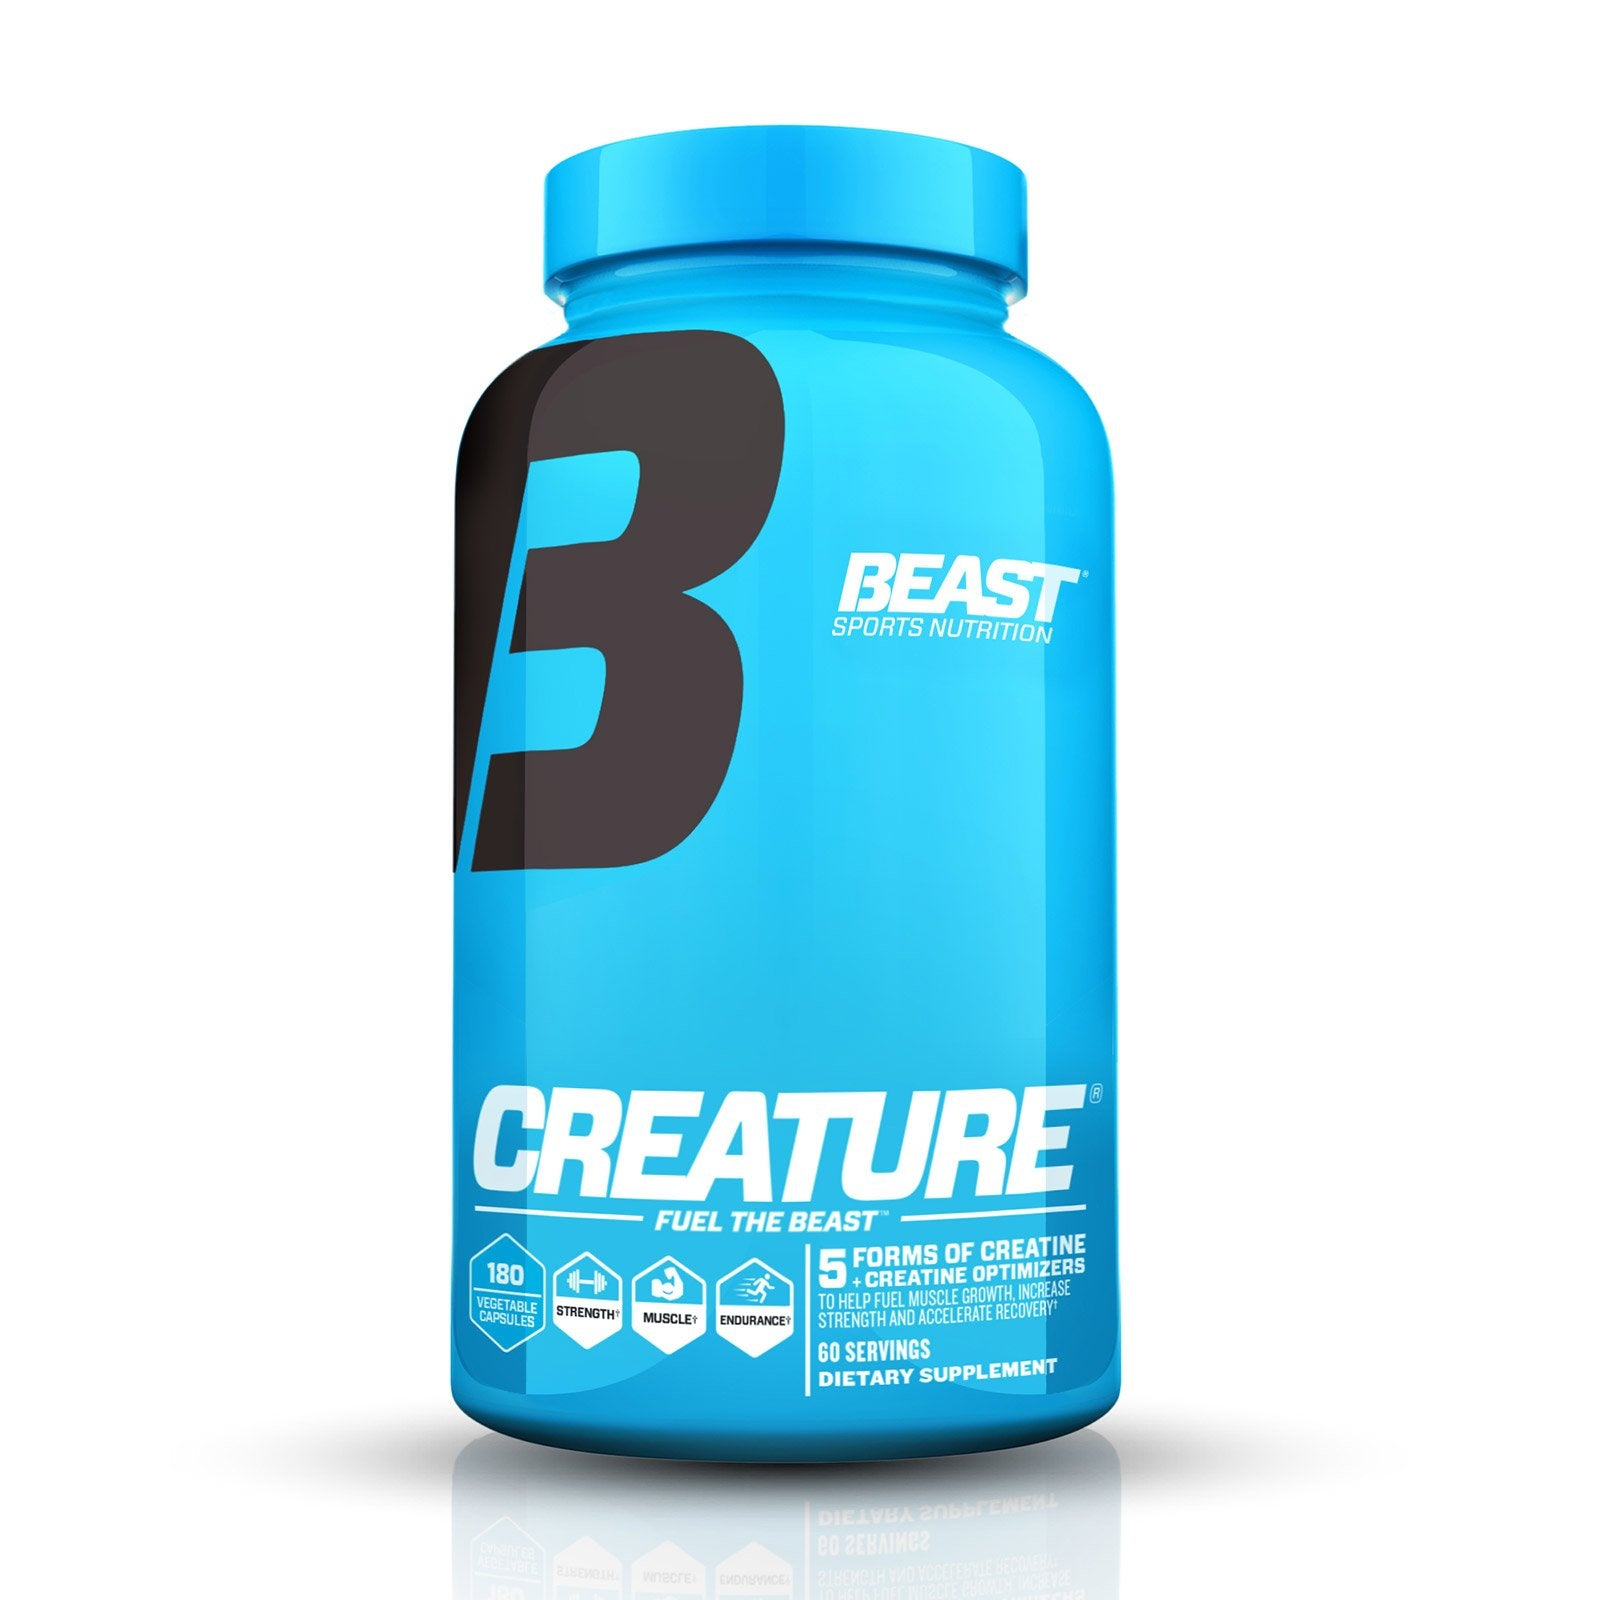 CREATURE® CREATINE - Beast Sports Nutrition